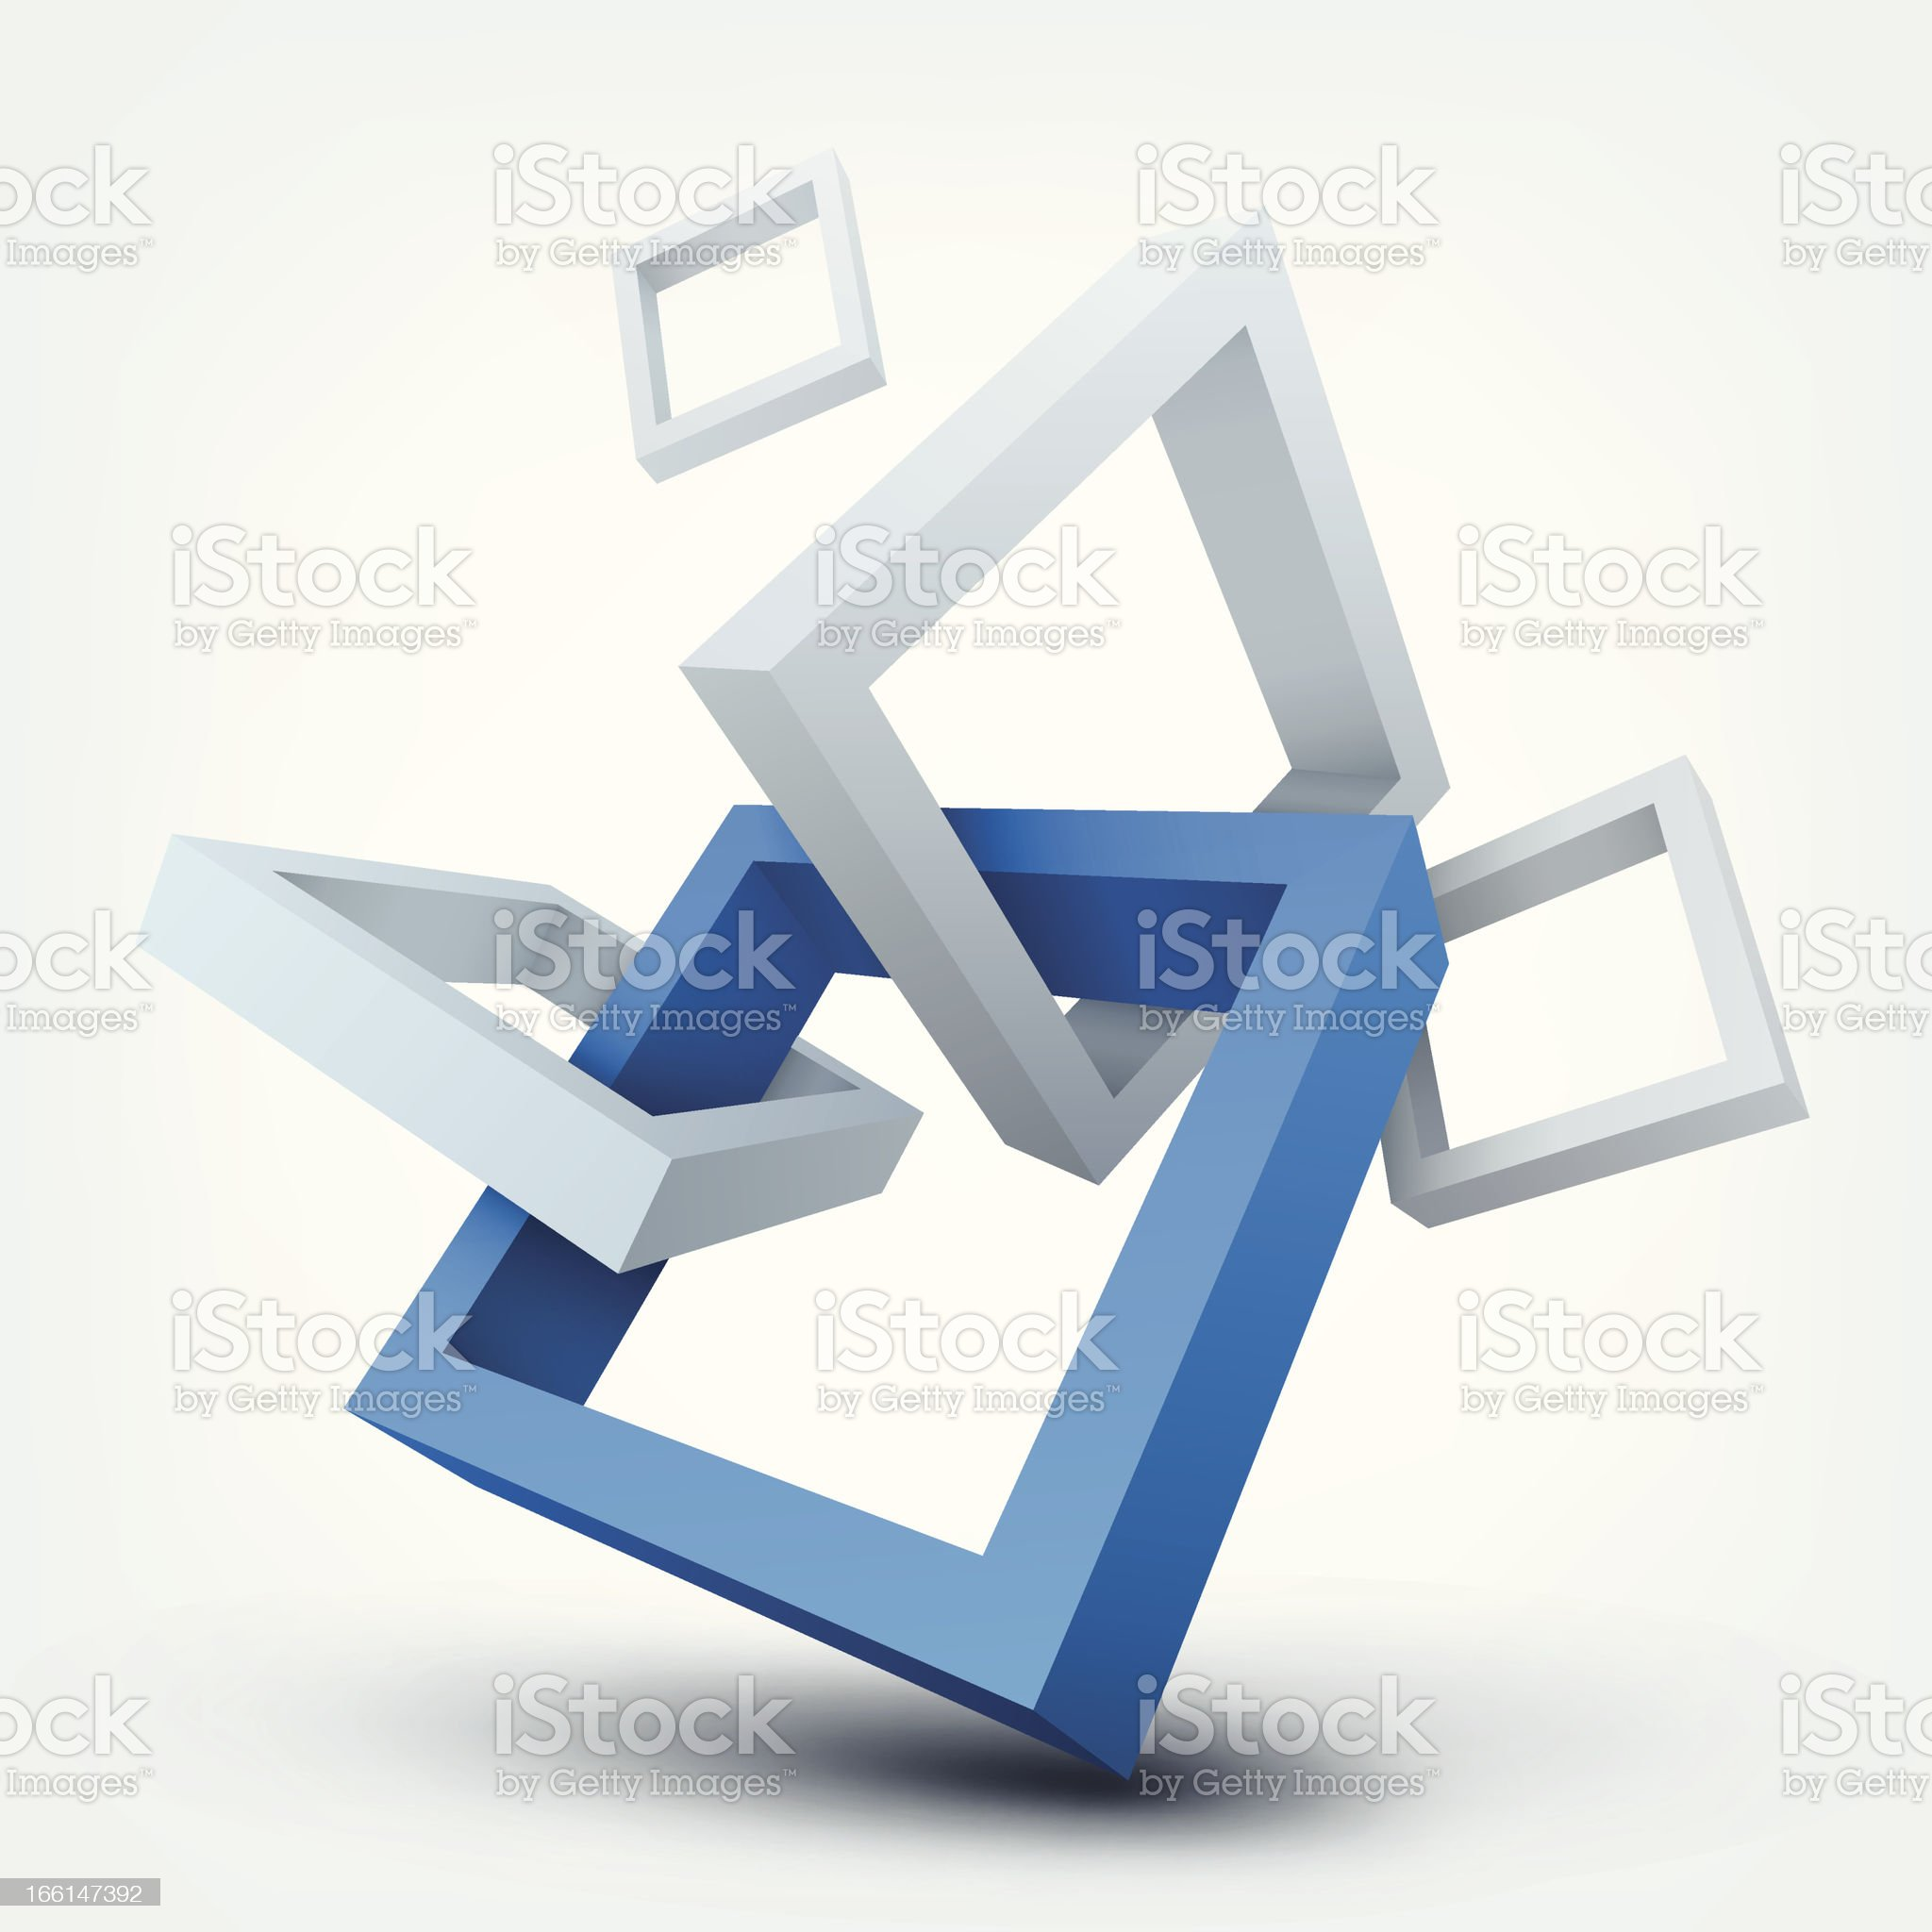 Vector illustration of 3d shapes royalty-free stock vector art